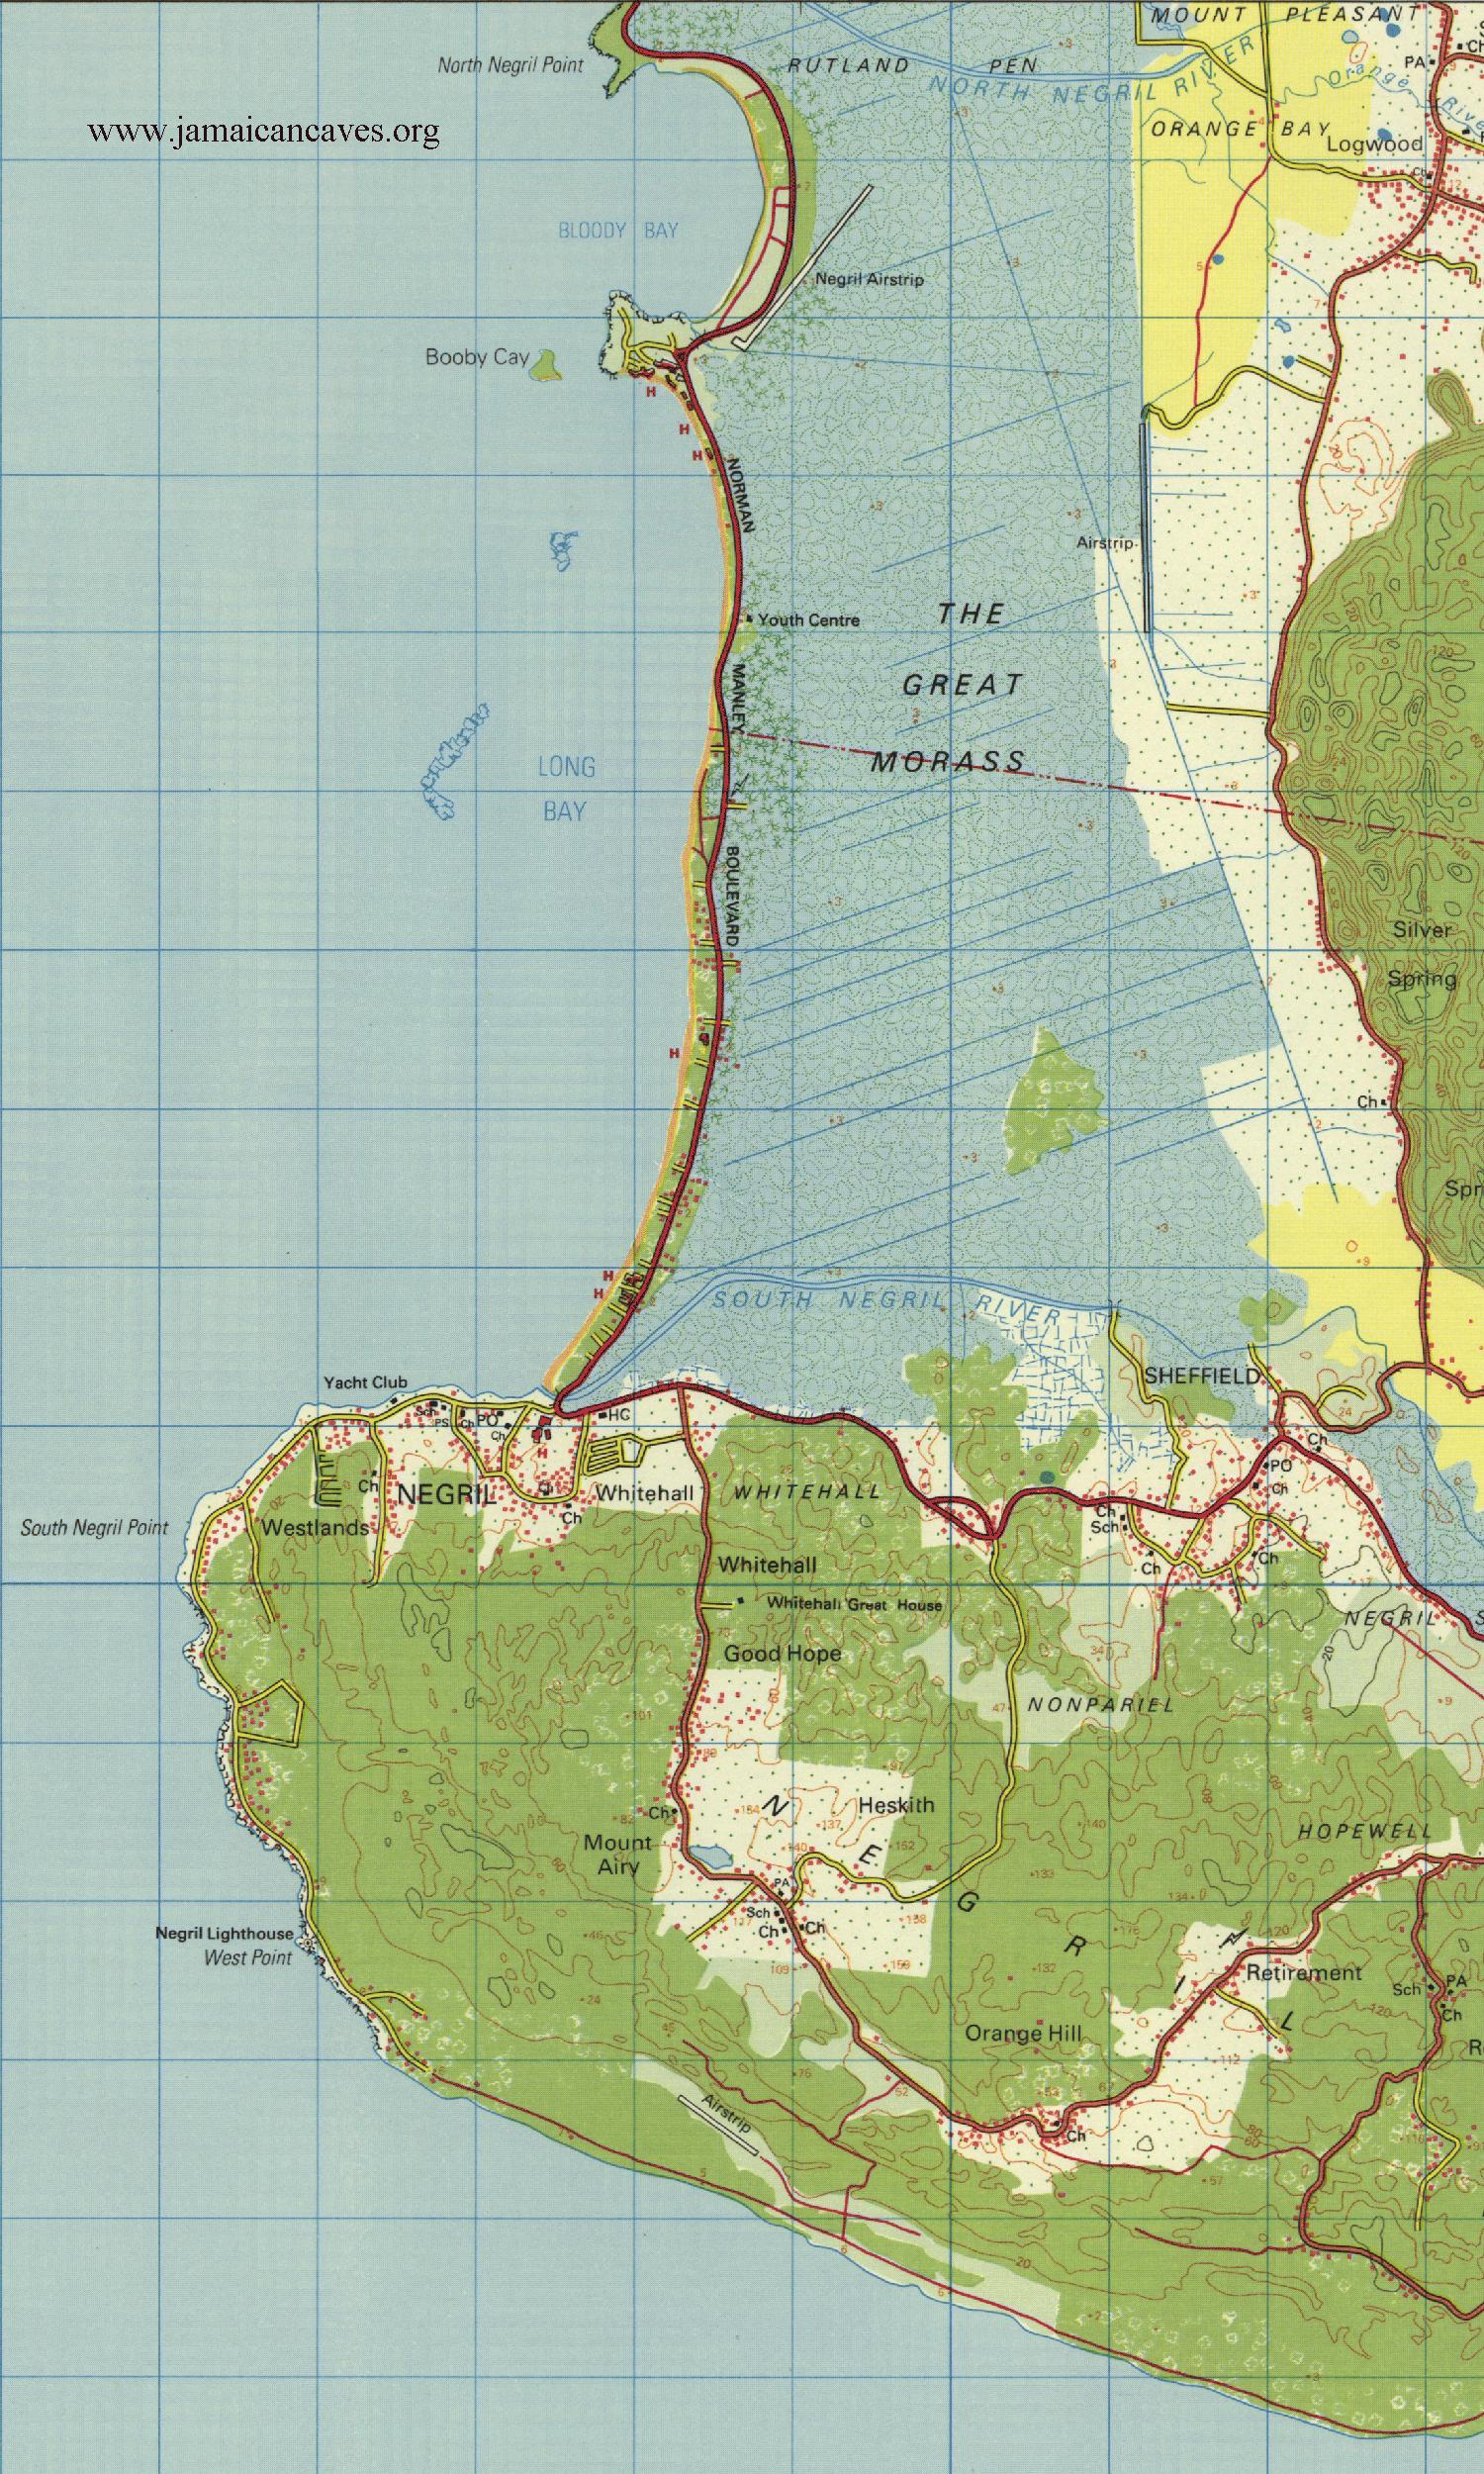 Topo Map for Negril